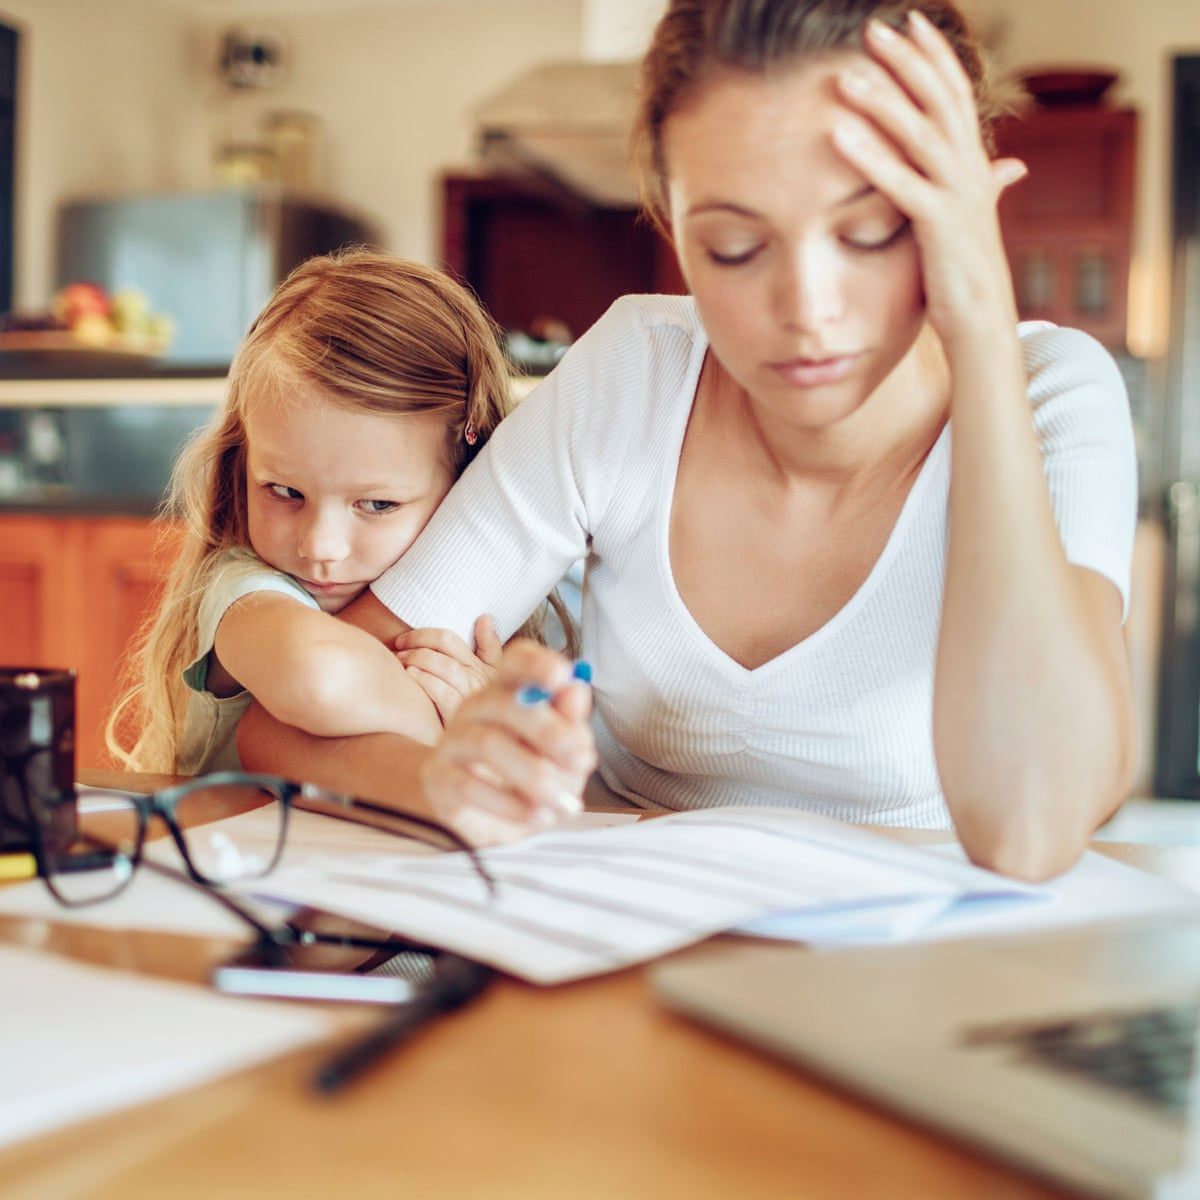 Global Status of Working Moms in the Wake of COVID-19